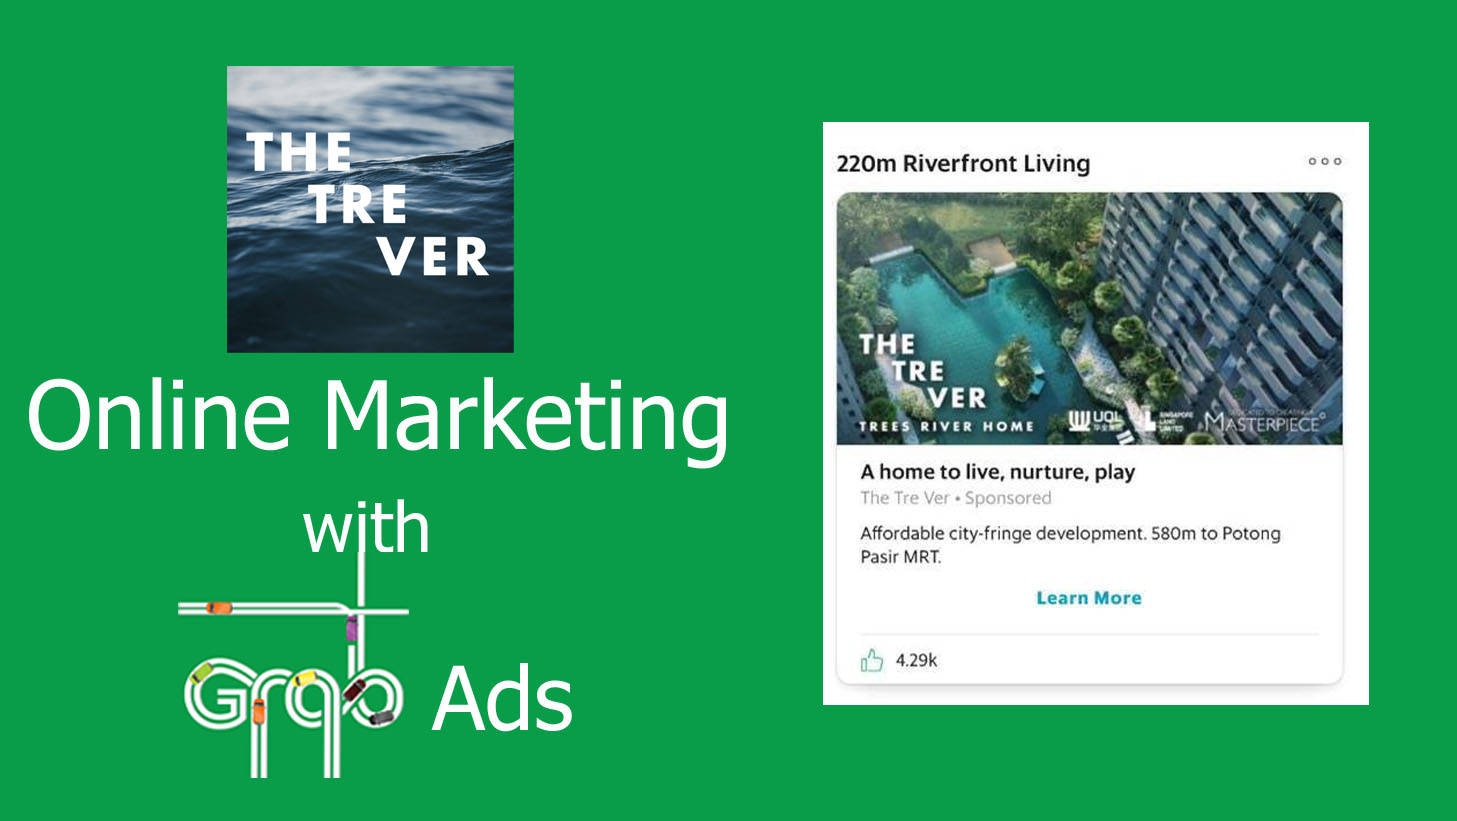 UOL Tre Ver online marketing on Grab Ads | IH Digital Singapore